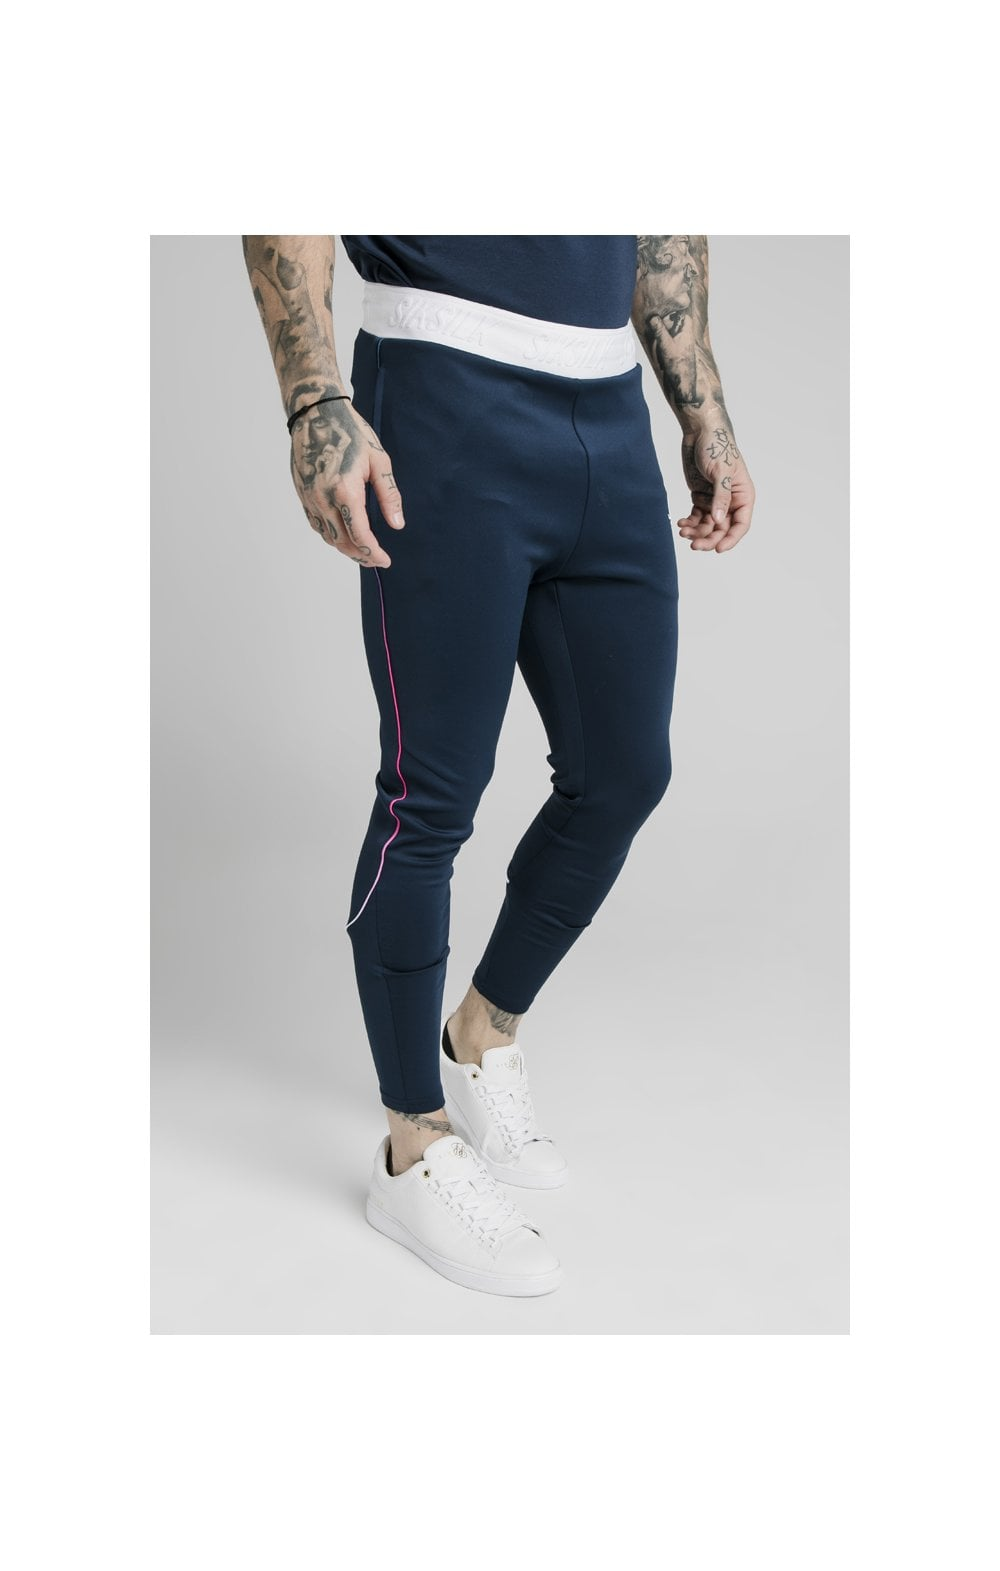 Load image into Gallery viewer, SikSilk Athlete Prestige Fade Track Pants - Navy (1)